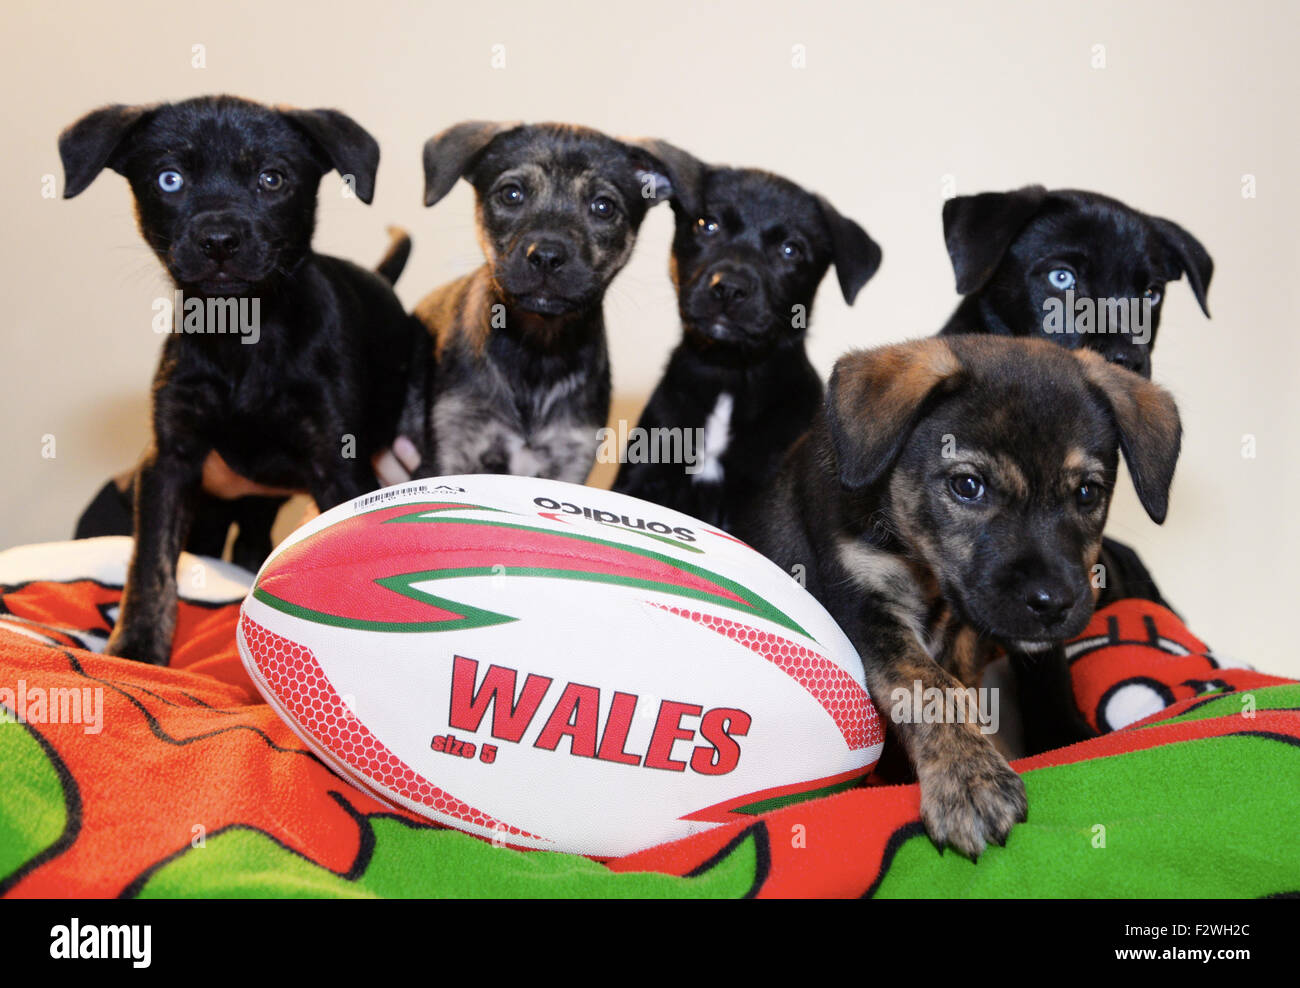 Bridgend, Wales, UK. 24th September, 2015.   RUGBY WORLD PUP Dogs Trust Bridgend Scrum of Rugby Pups for homes  - Stock Image